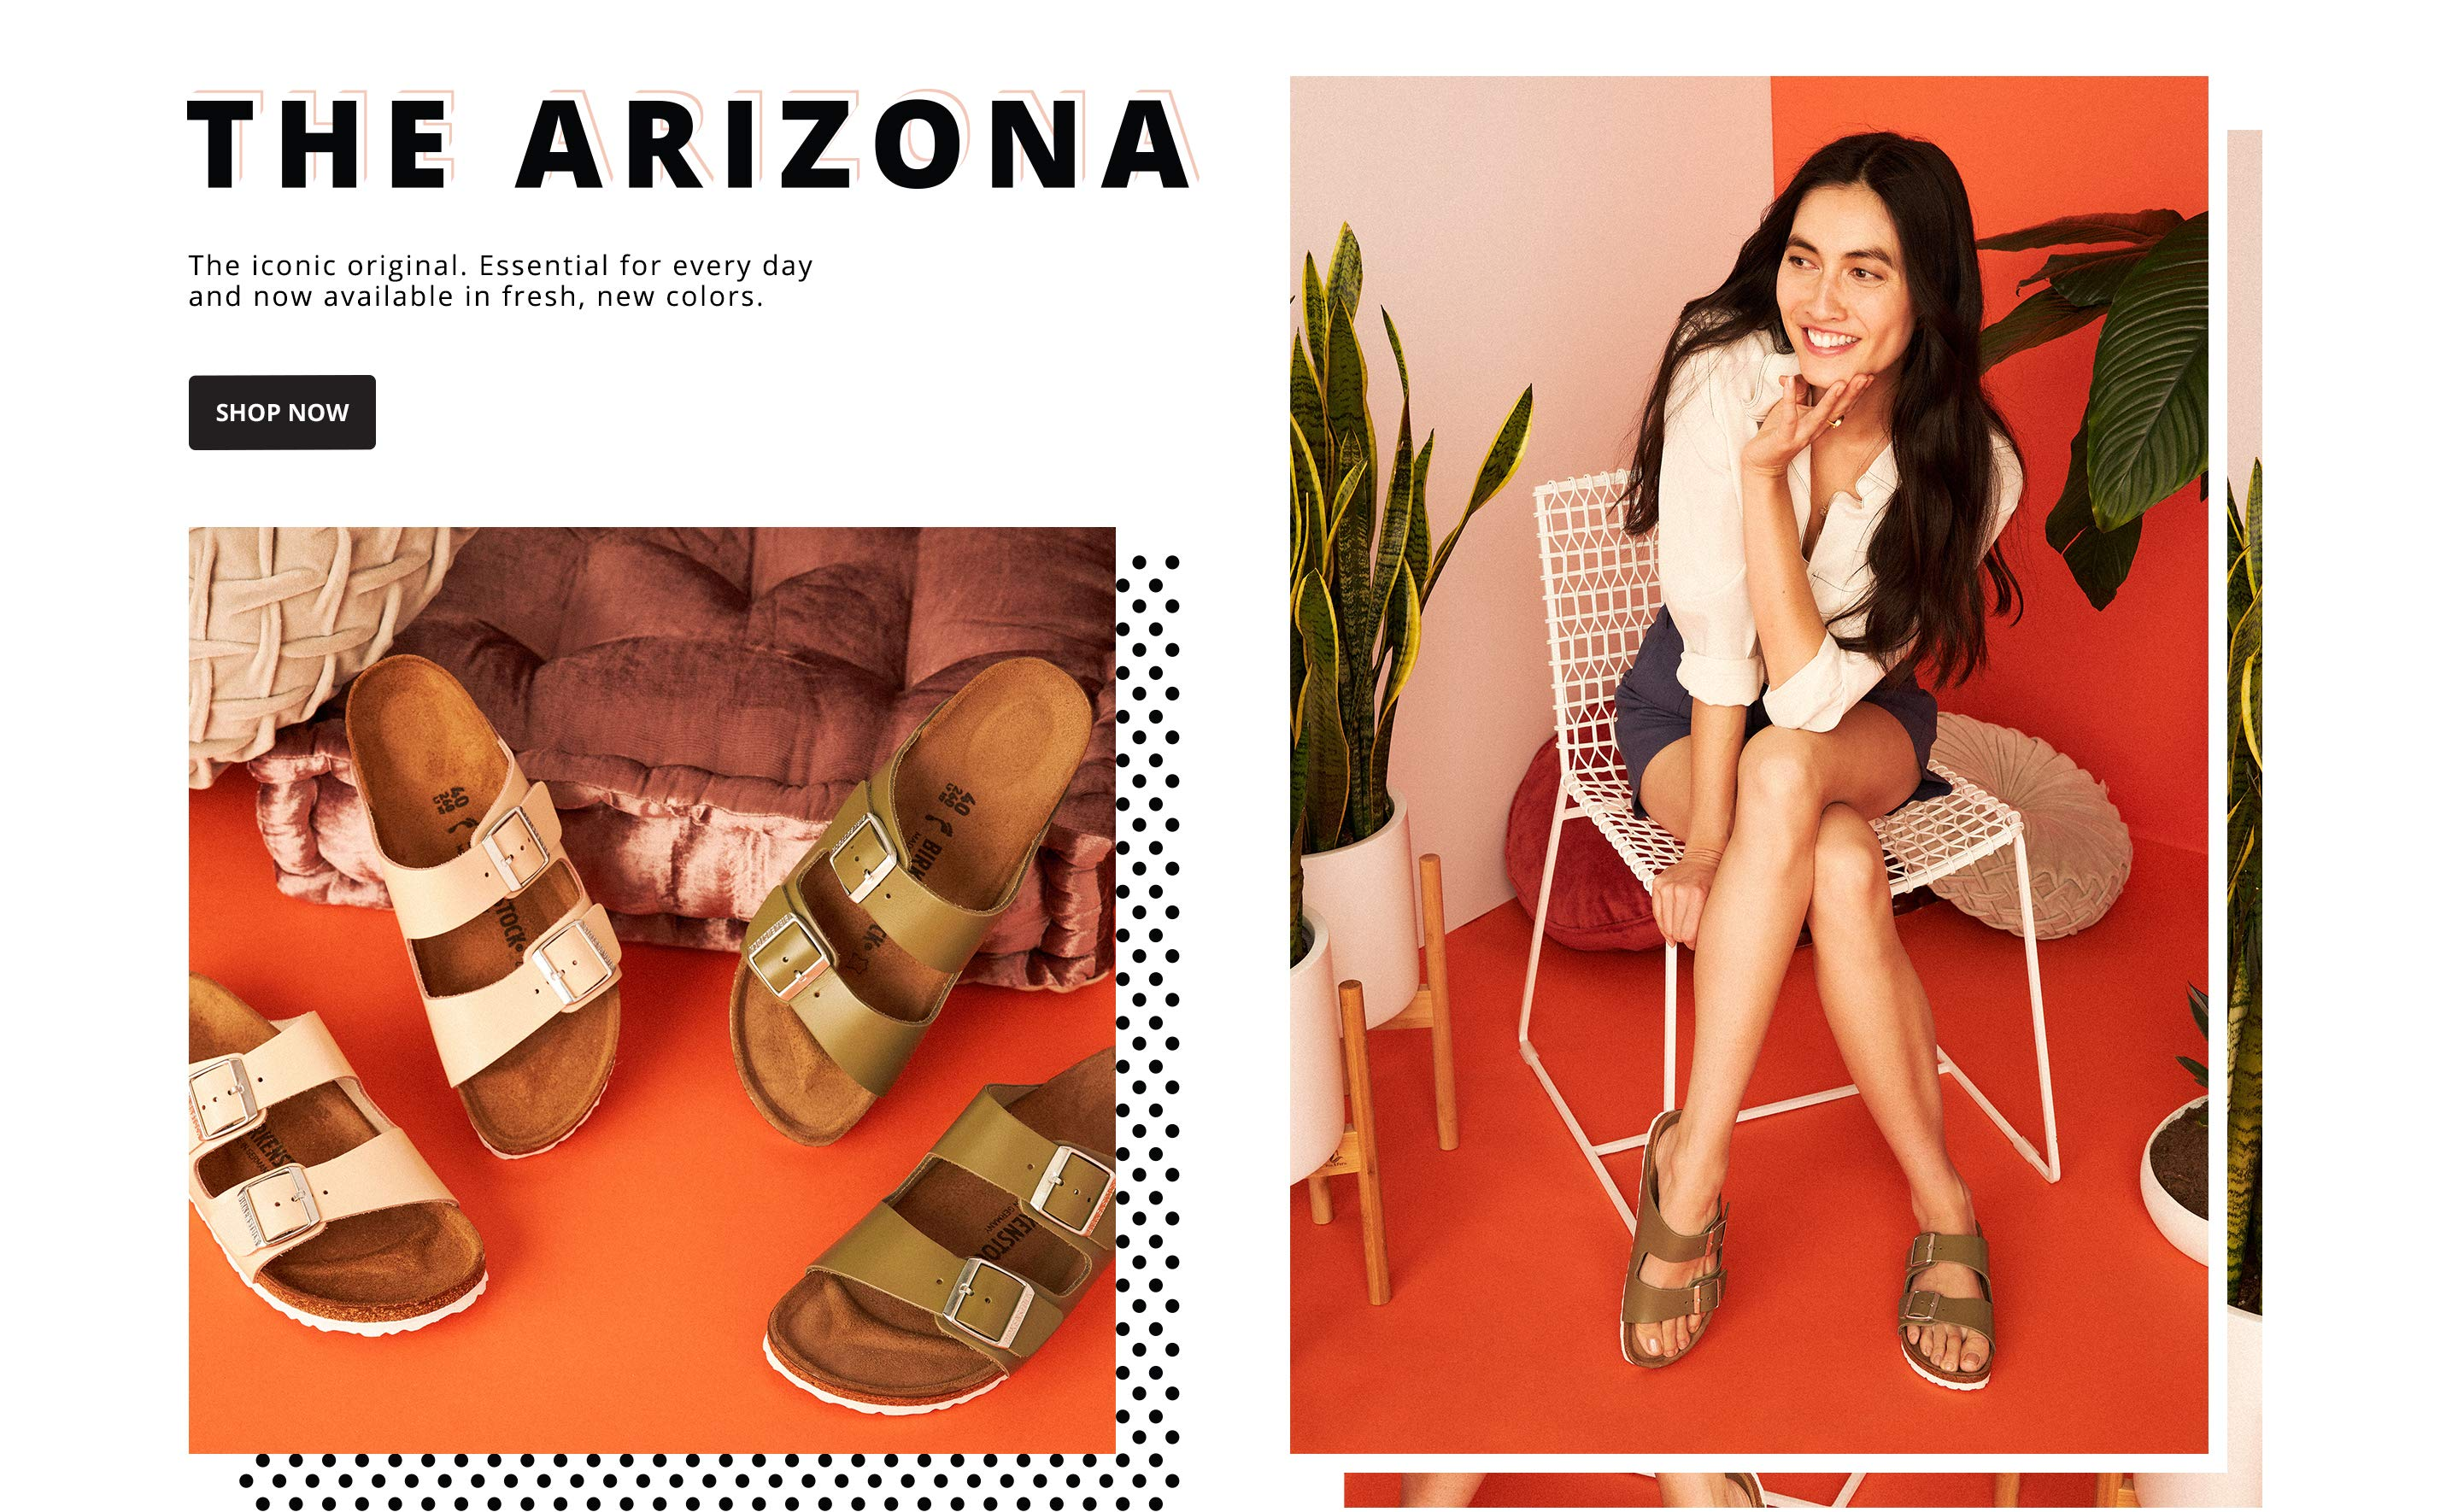 The Arizona. The iconic original. Essential for every day and now available in fresh, new colors. SHOP NOW.